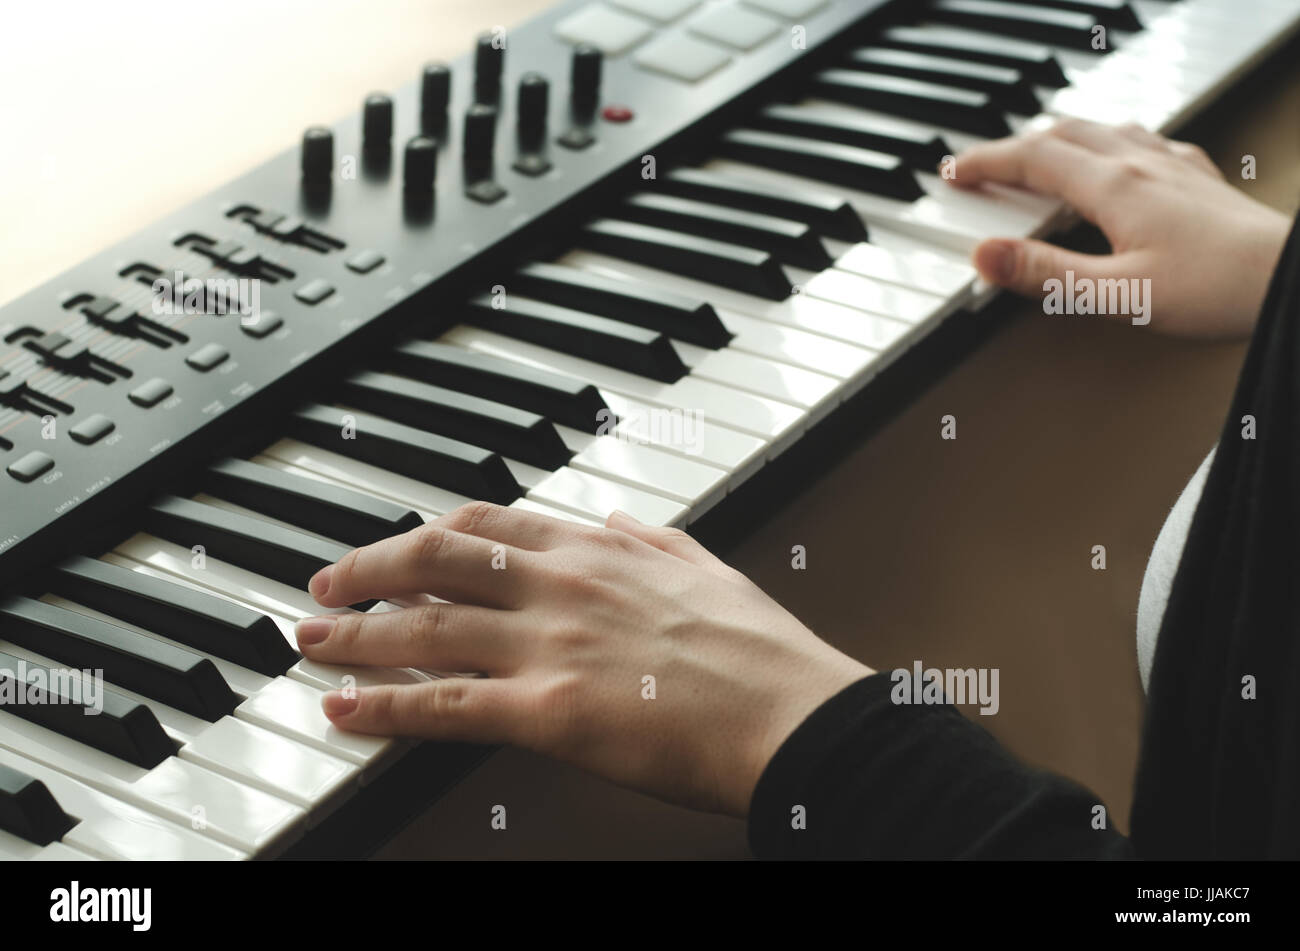 A woman in a black jacket plays a synthesizer against the window. The body in the frame. Side view - Stock Image